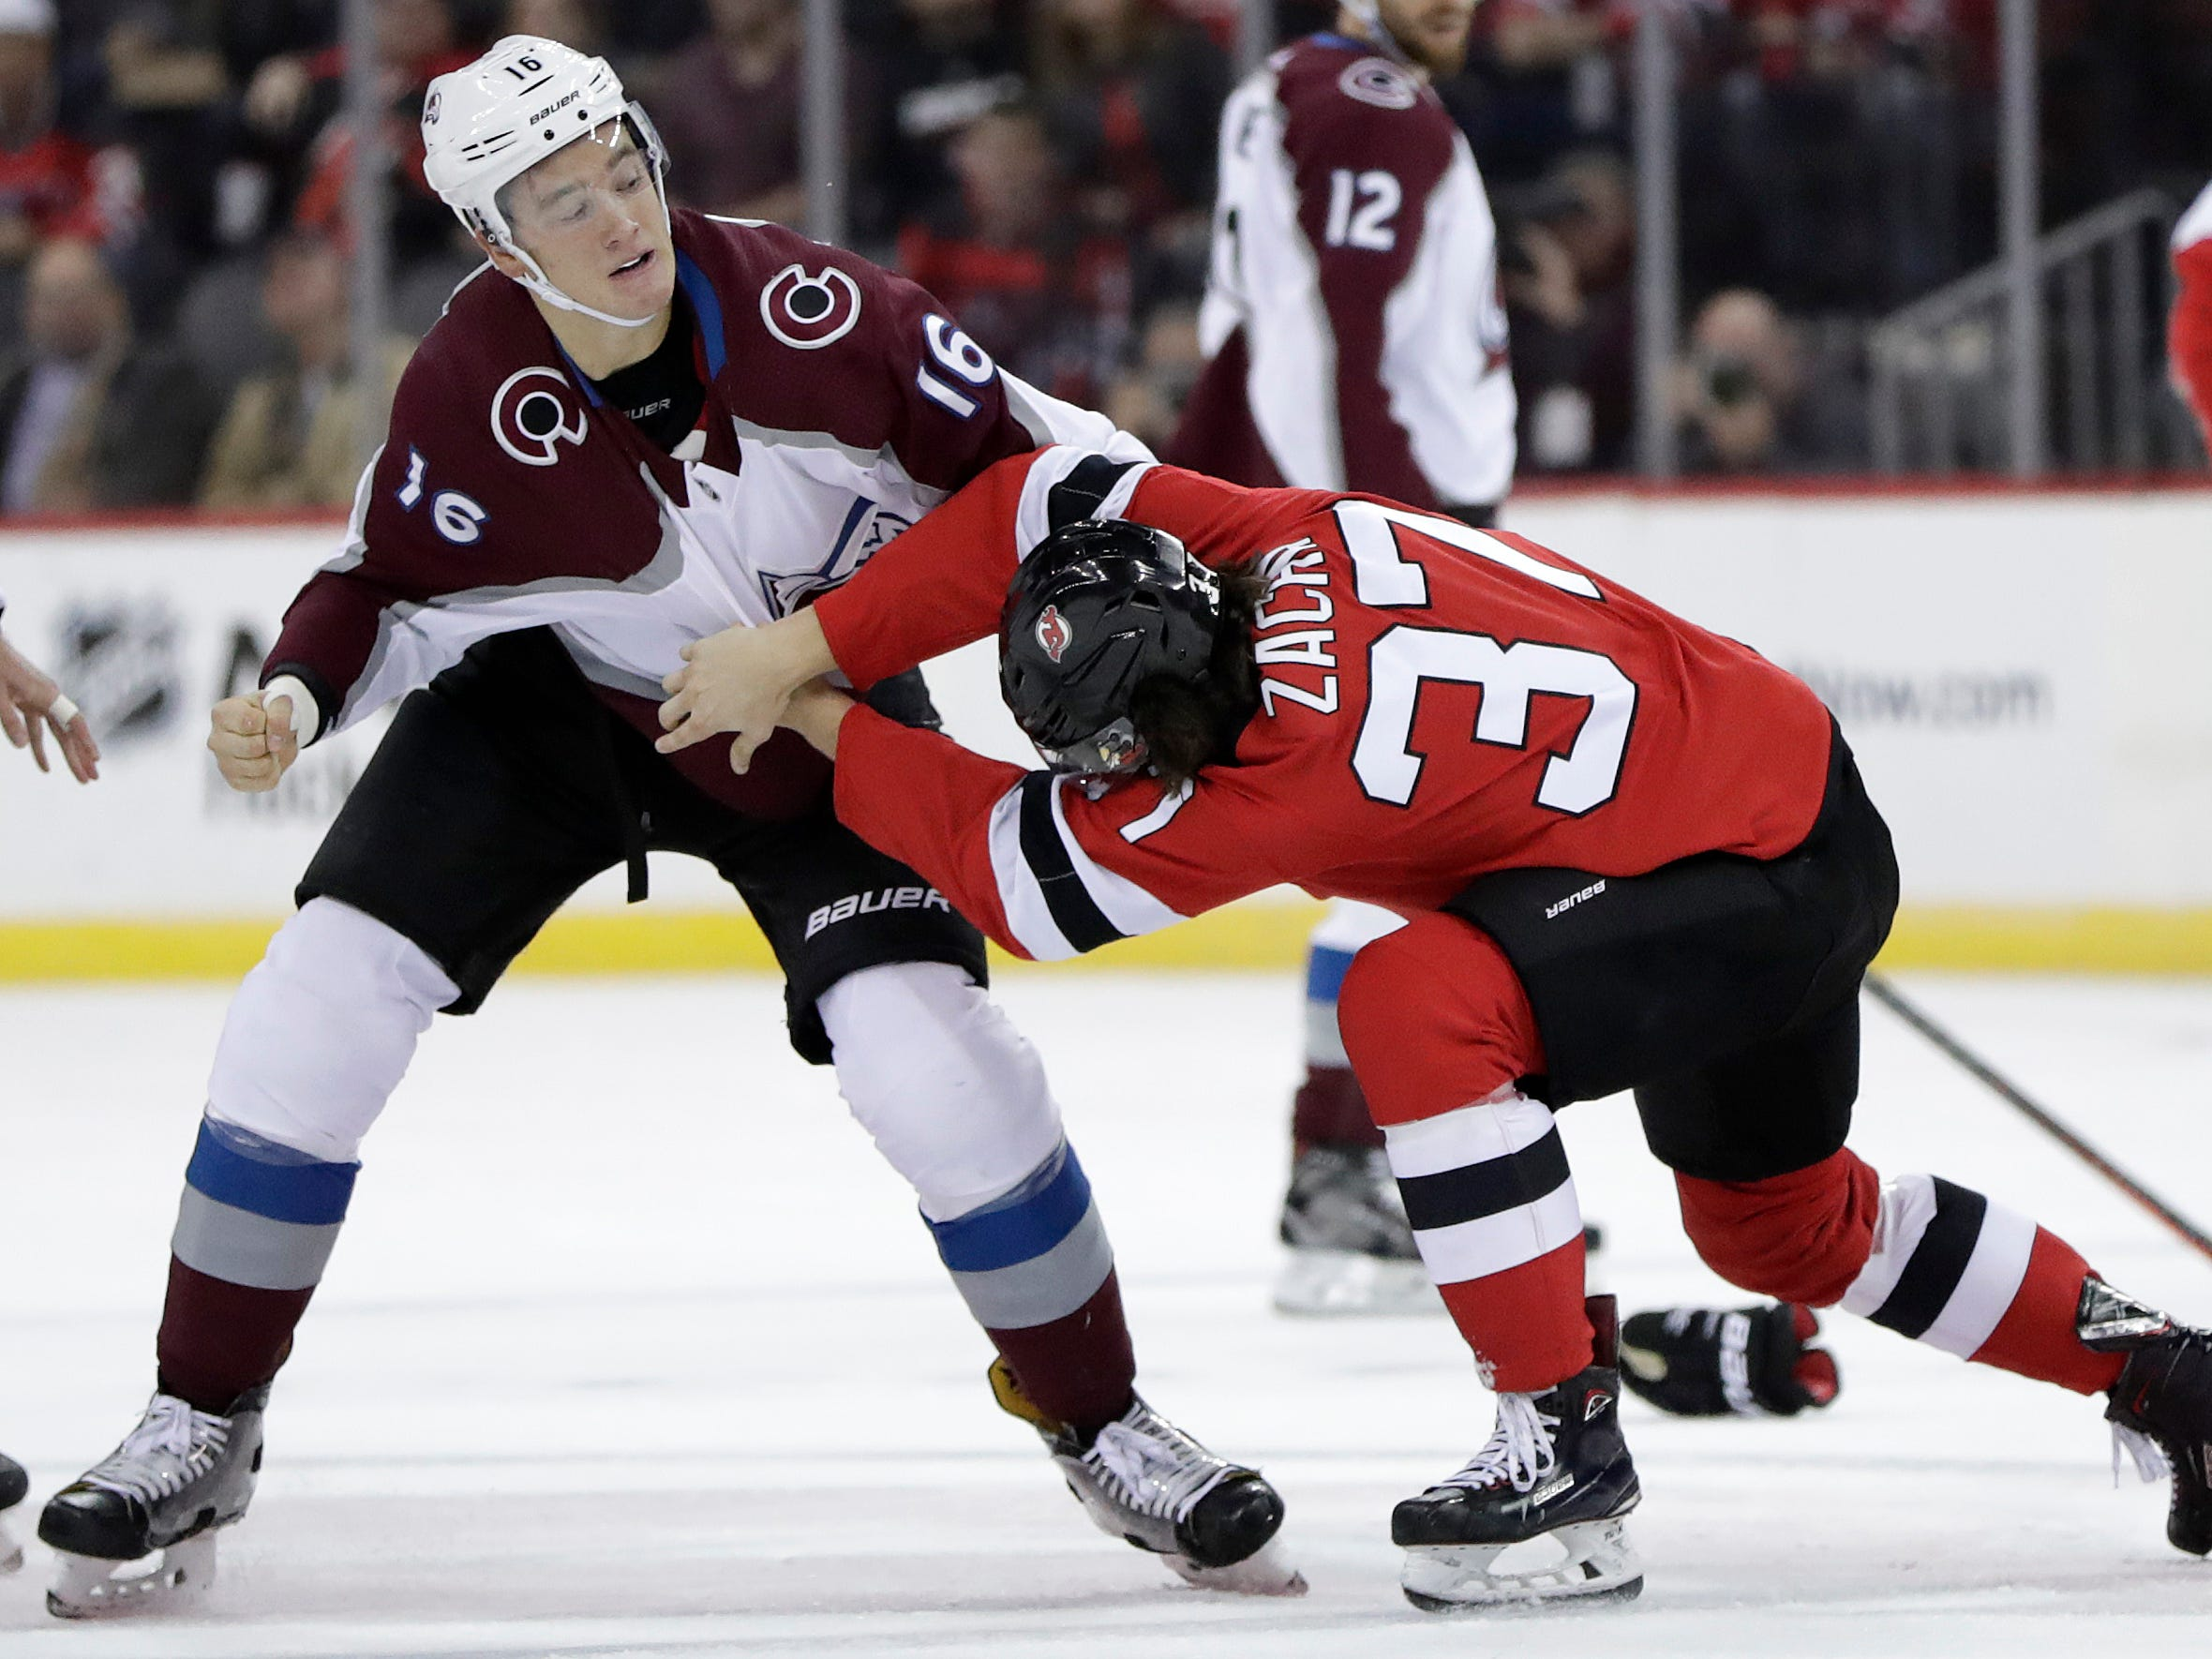 Oct. 18: Avalanche defenseman Nikita Zadorov, left, vs. Devils center Pavel Zacha